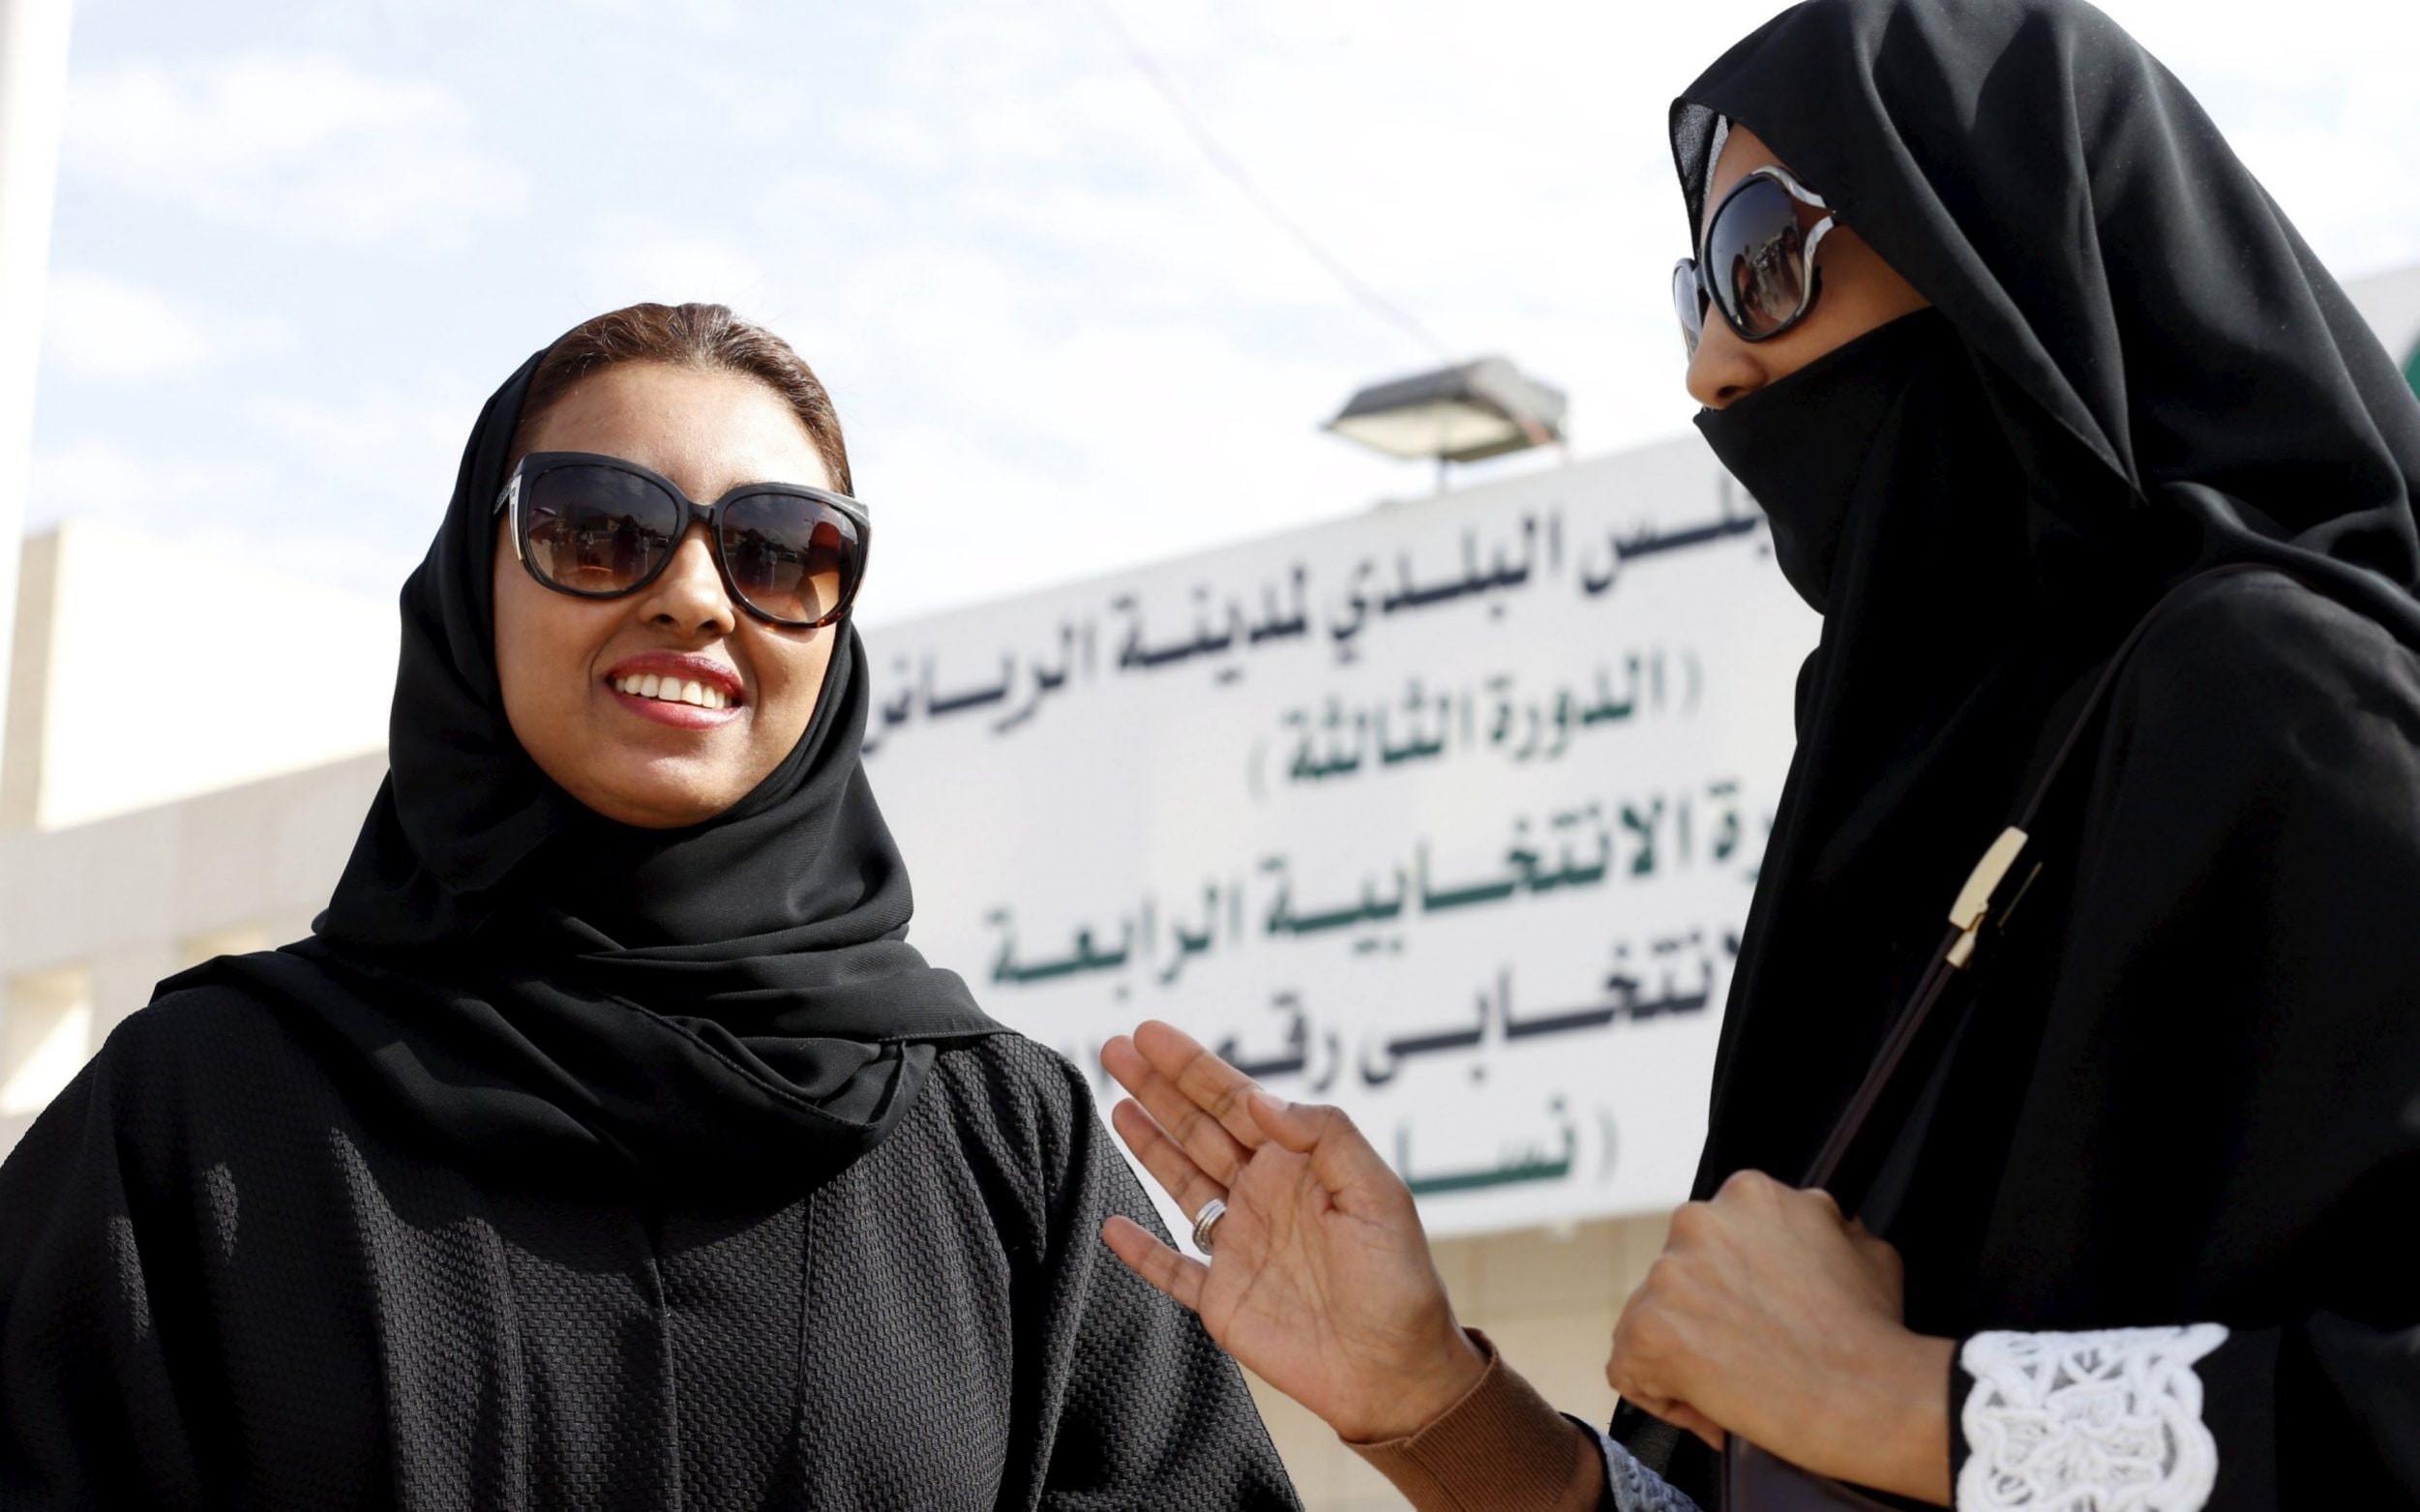 Most Saudi women are expected to cover their skin and hair